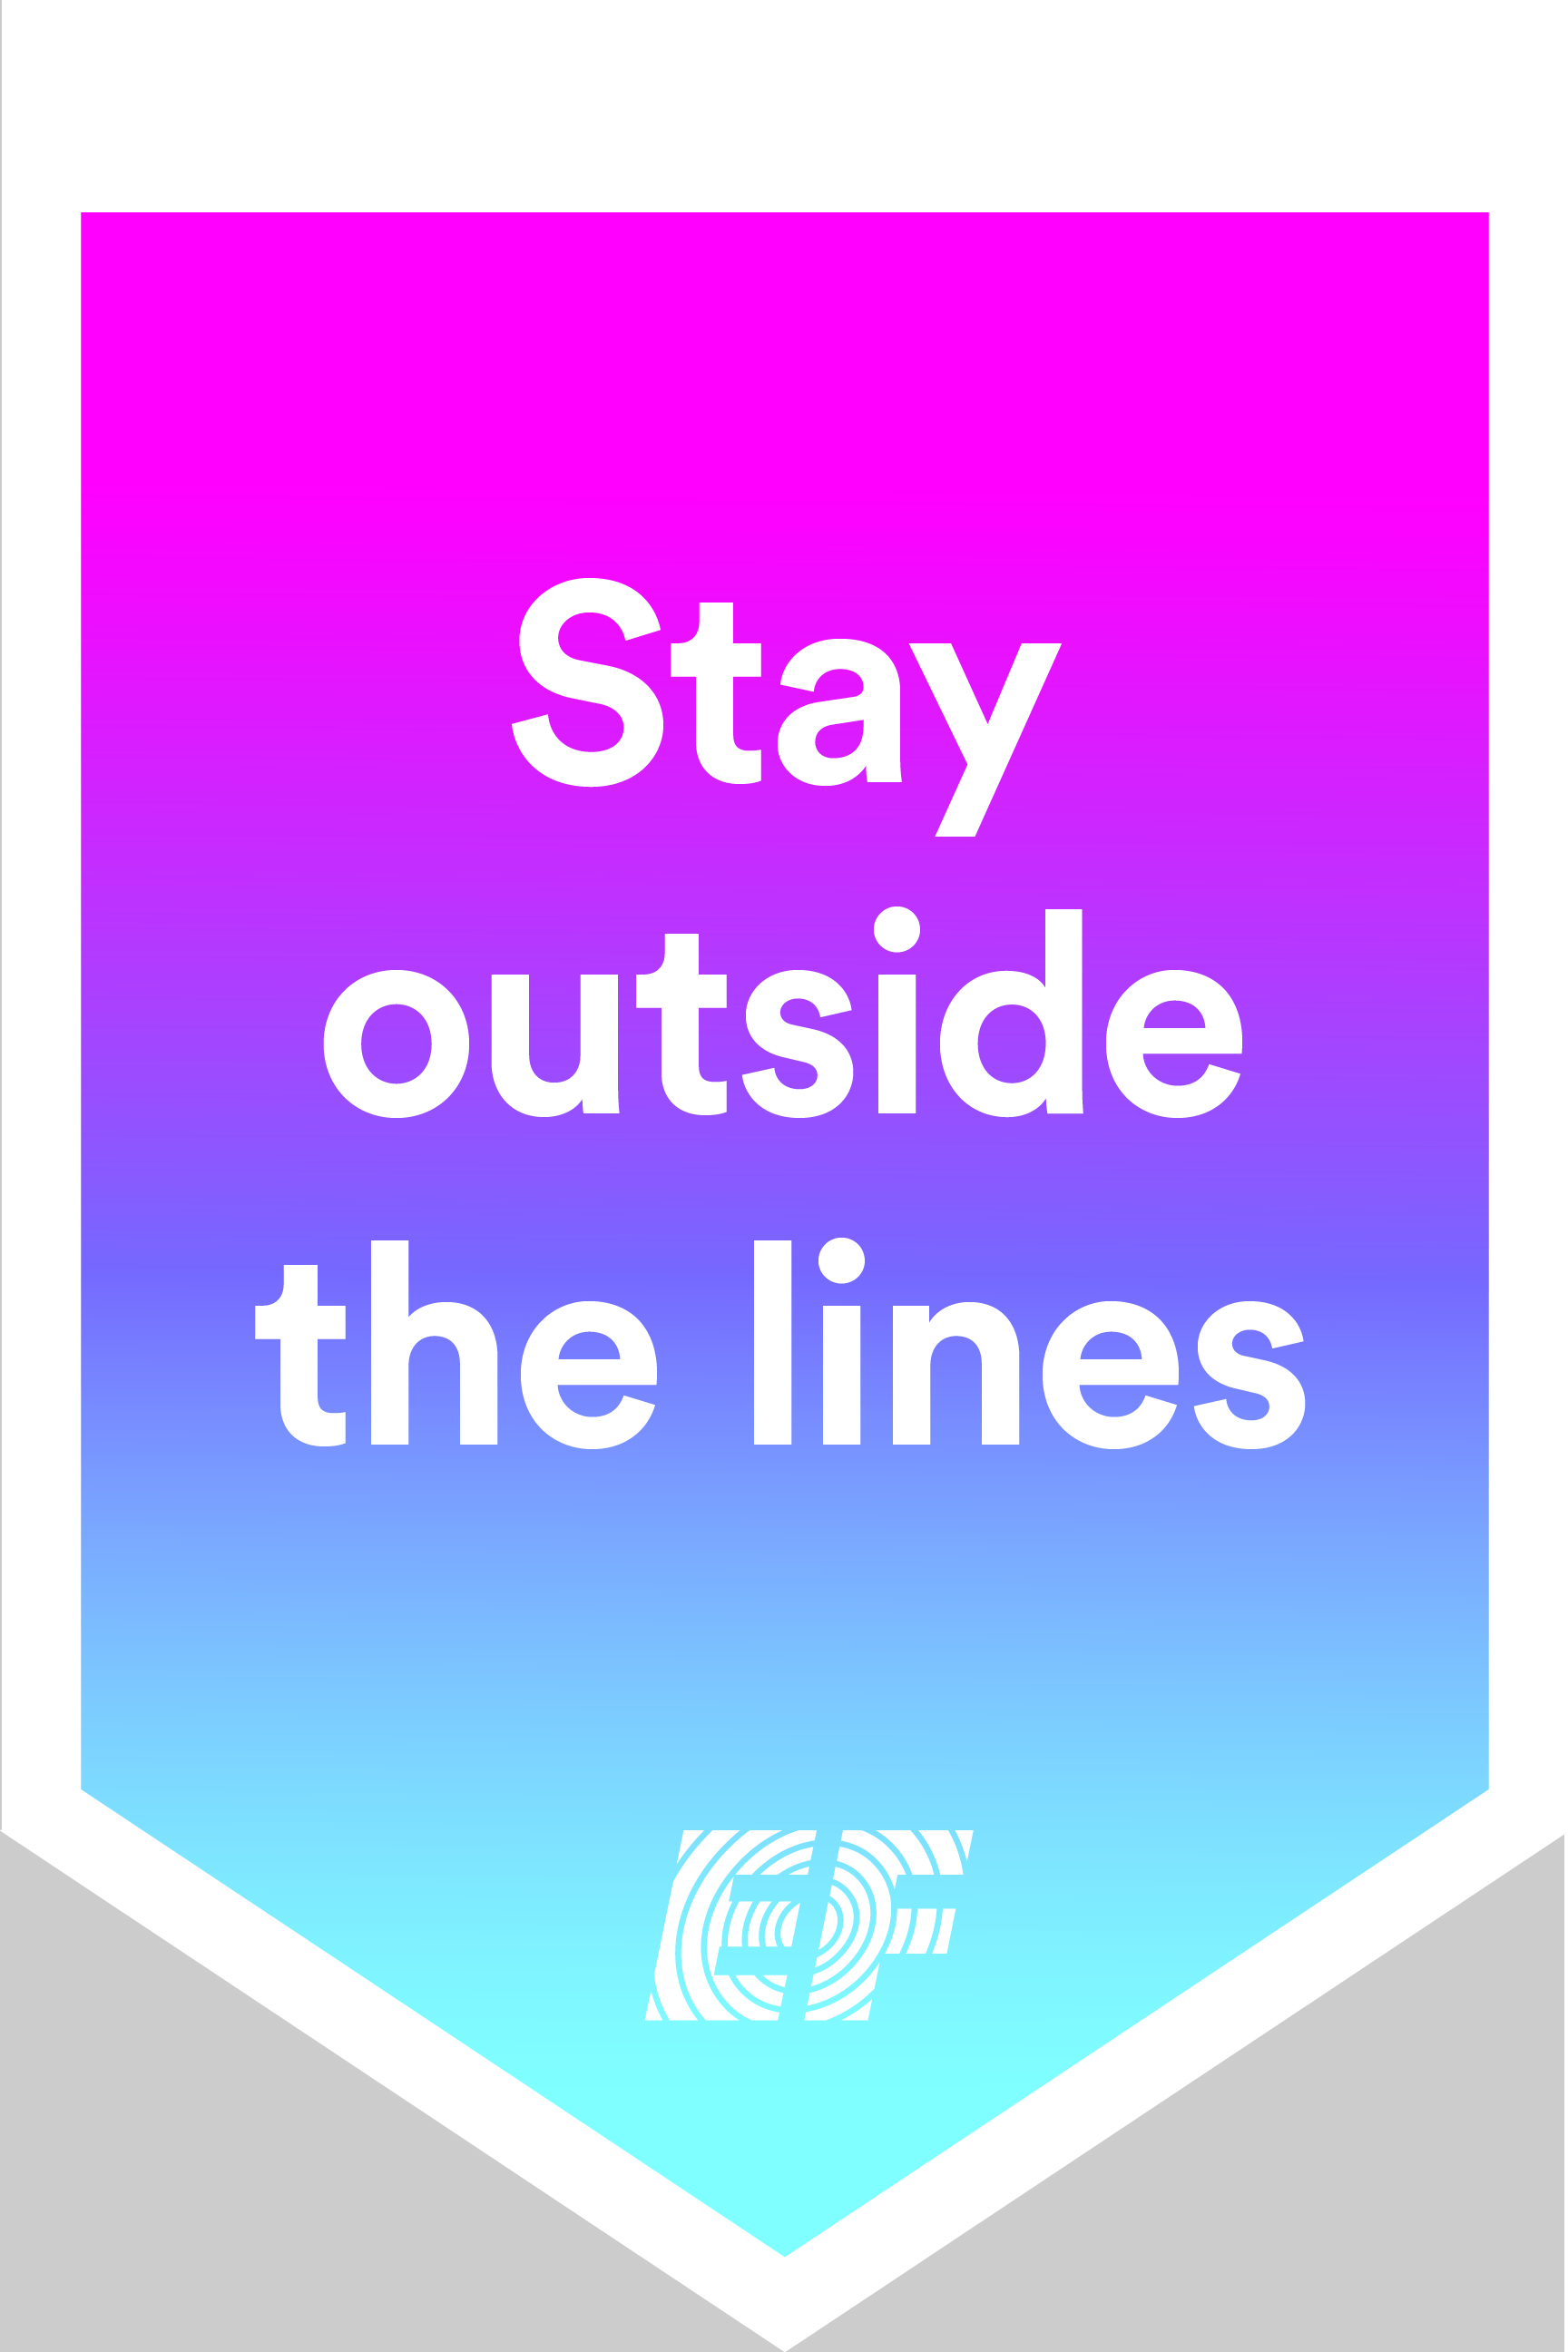 stay outside the lines - g-100.jpg